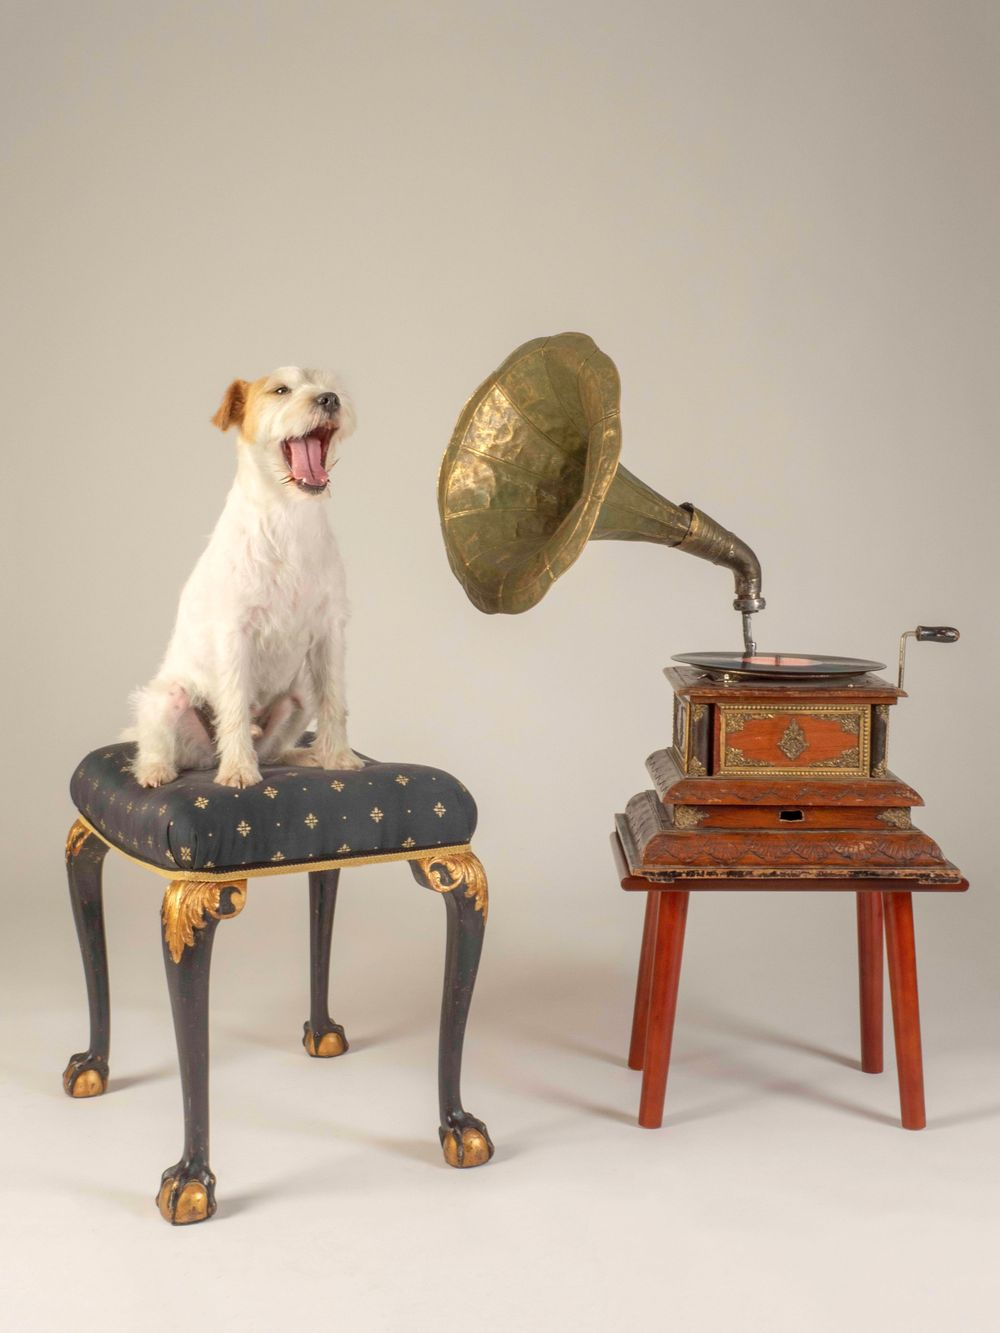 Parsons jack Russel Wiggo says 'Thank you for the Music'